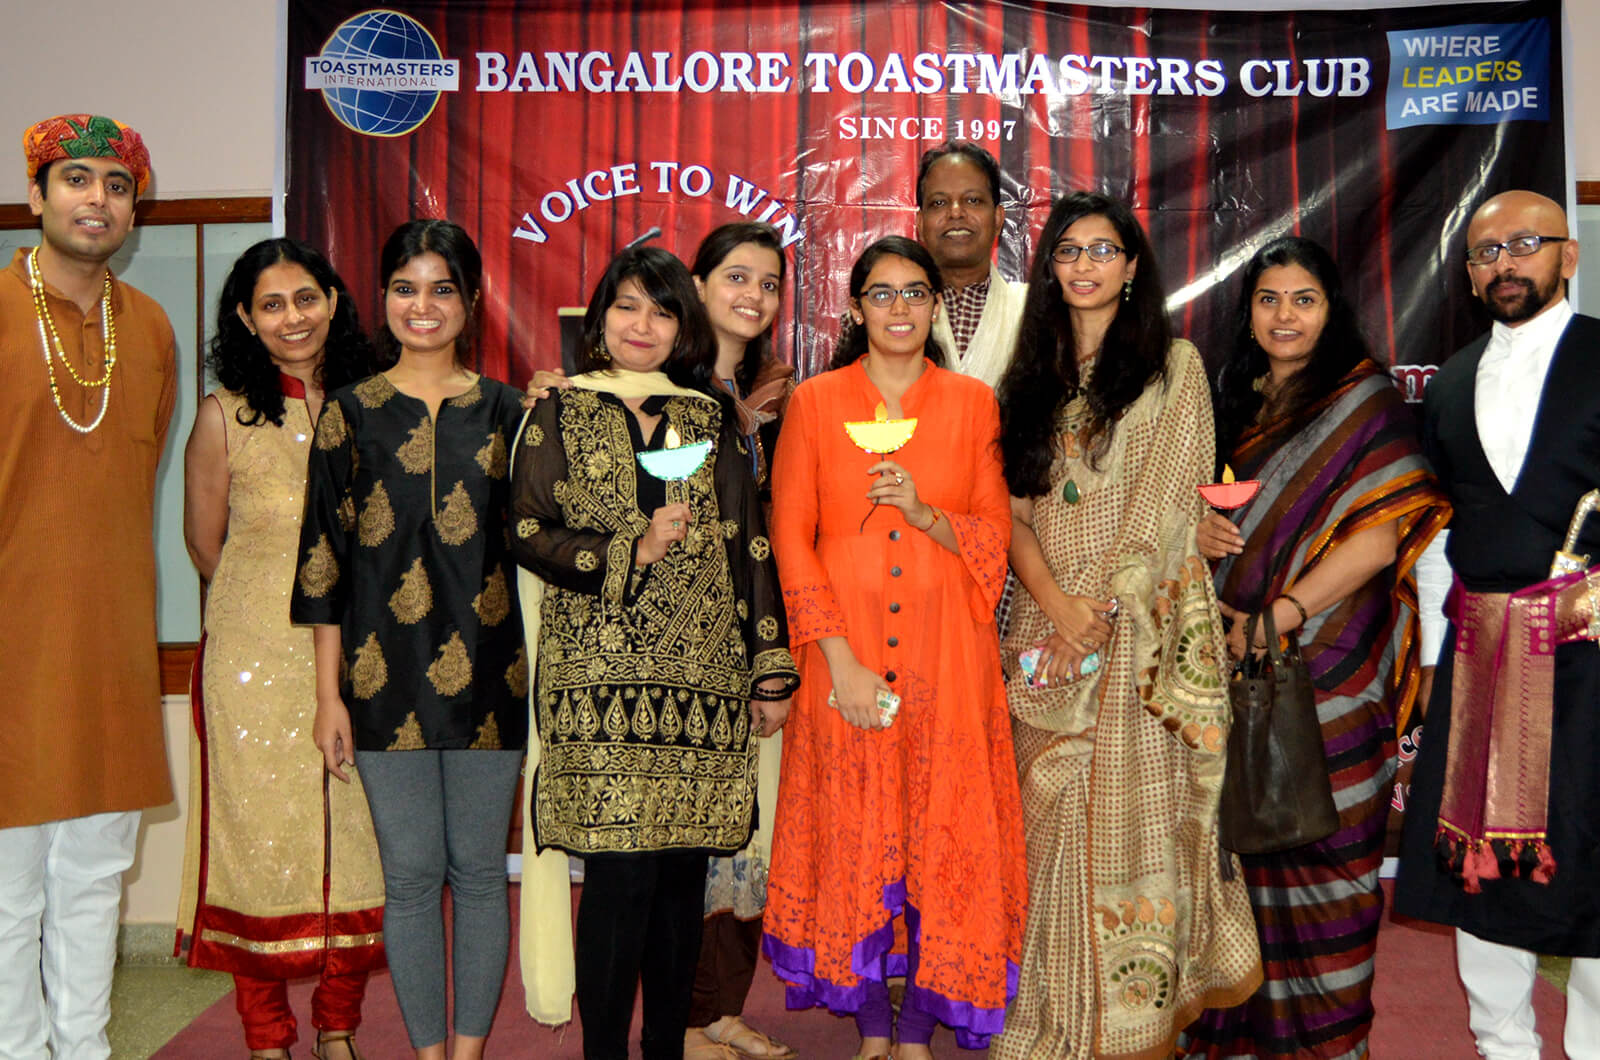 Members of the Bangalore Toastmasters club donned traditional Indian dress during their weekly meeting to celebrate Diwali festival.